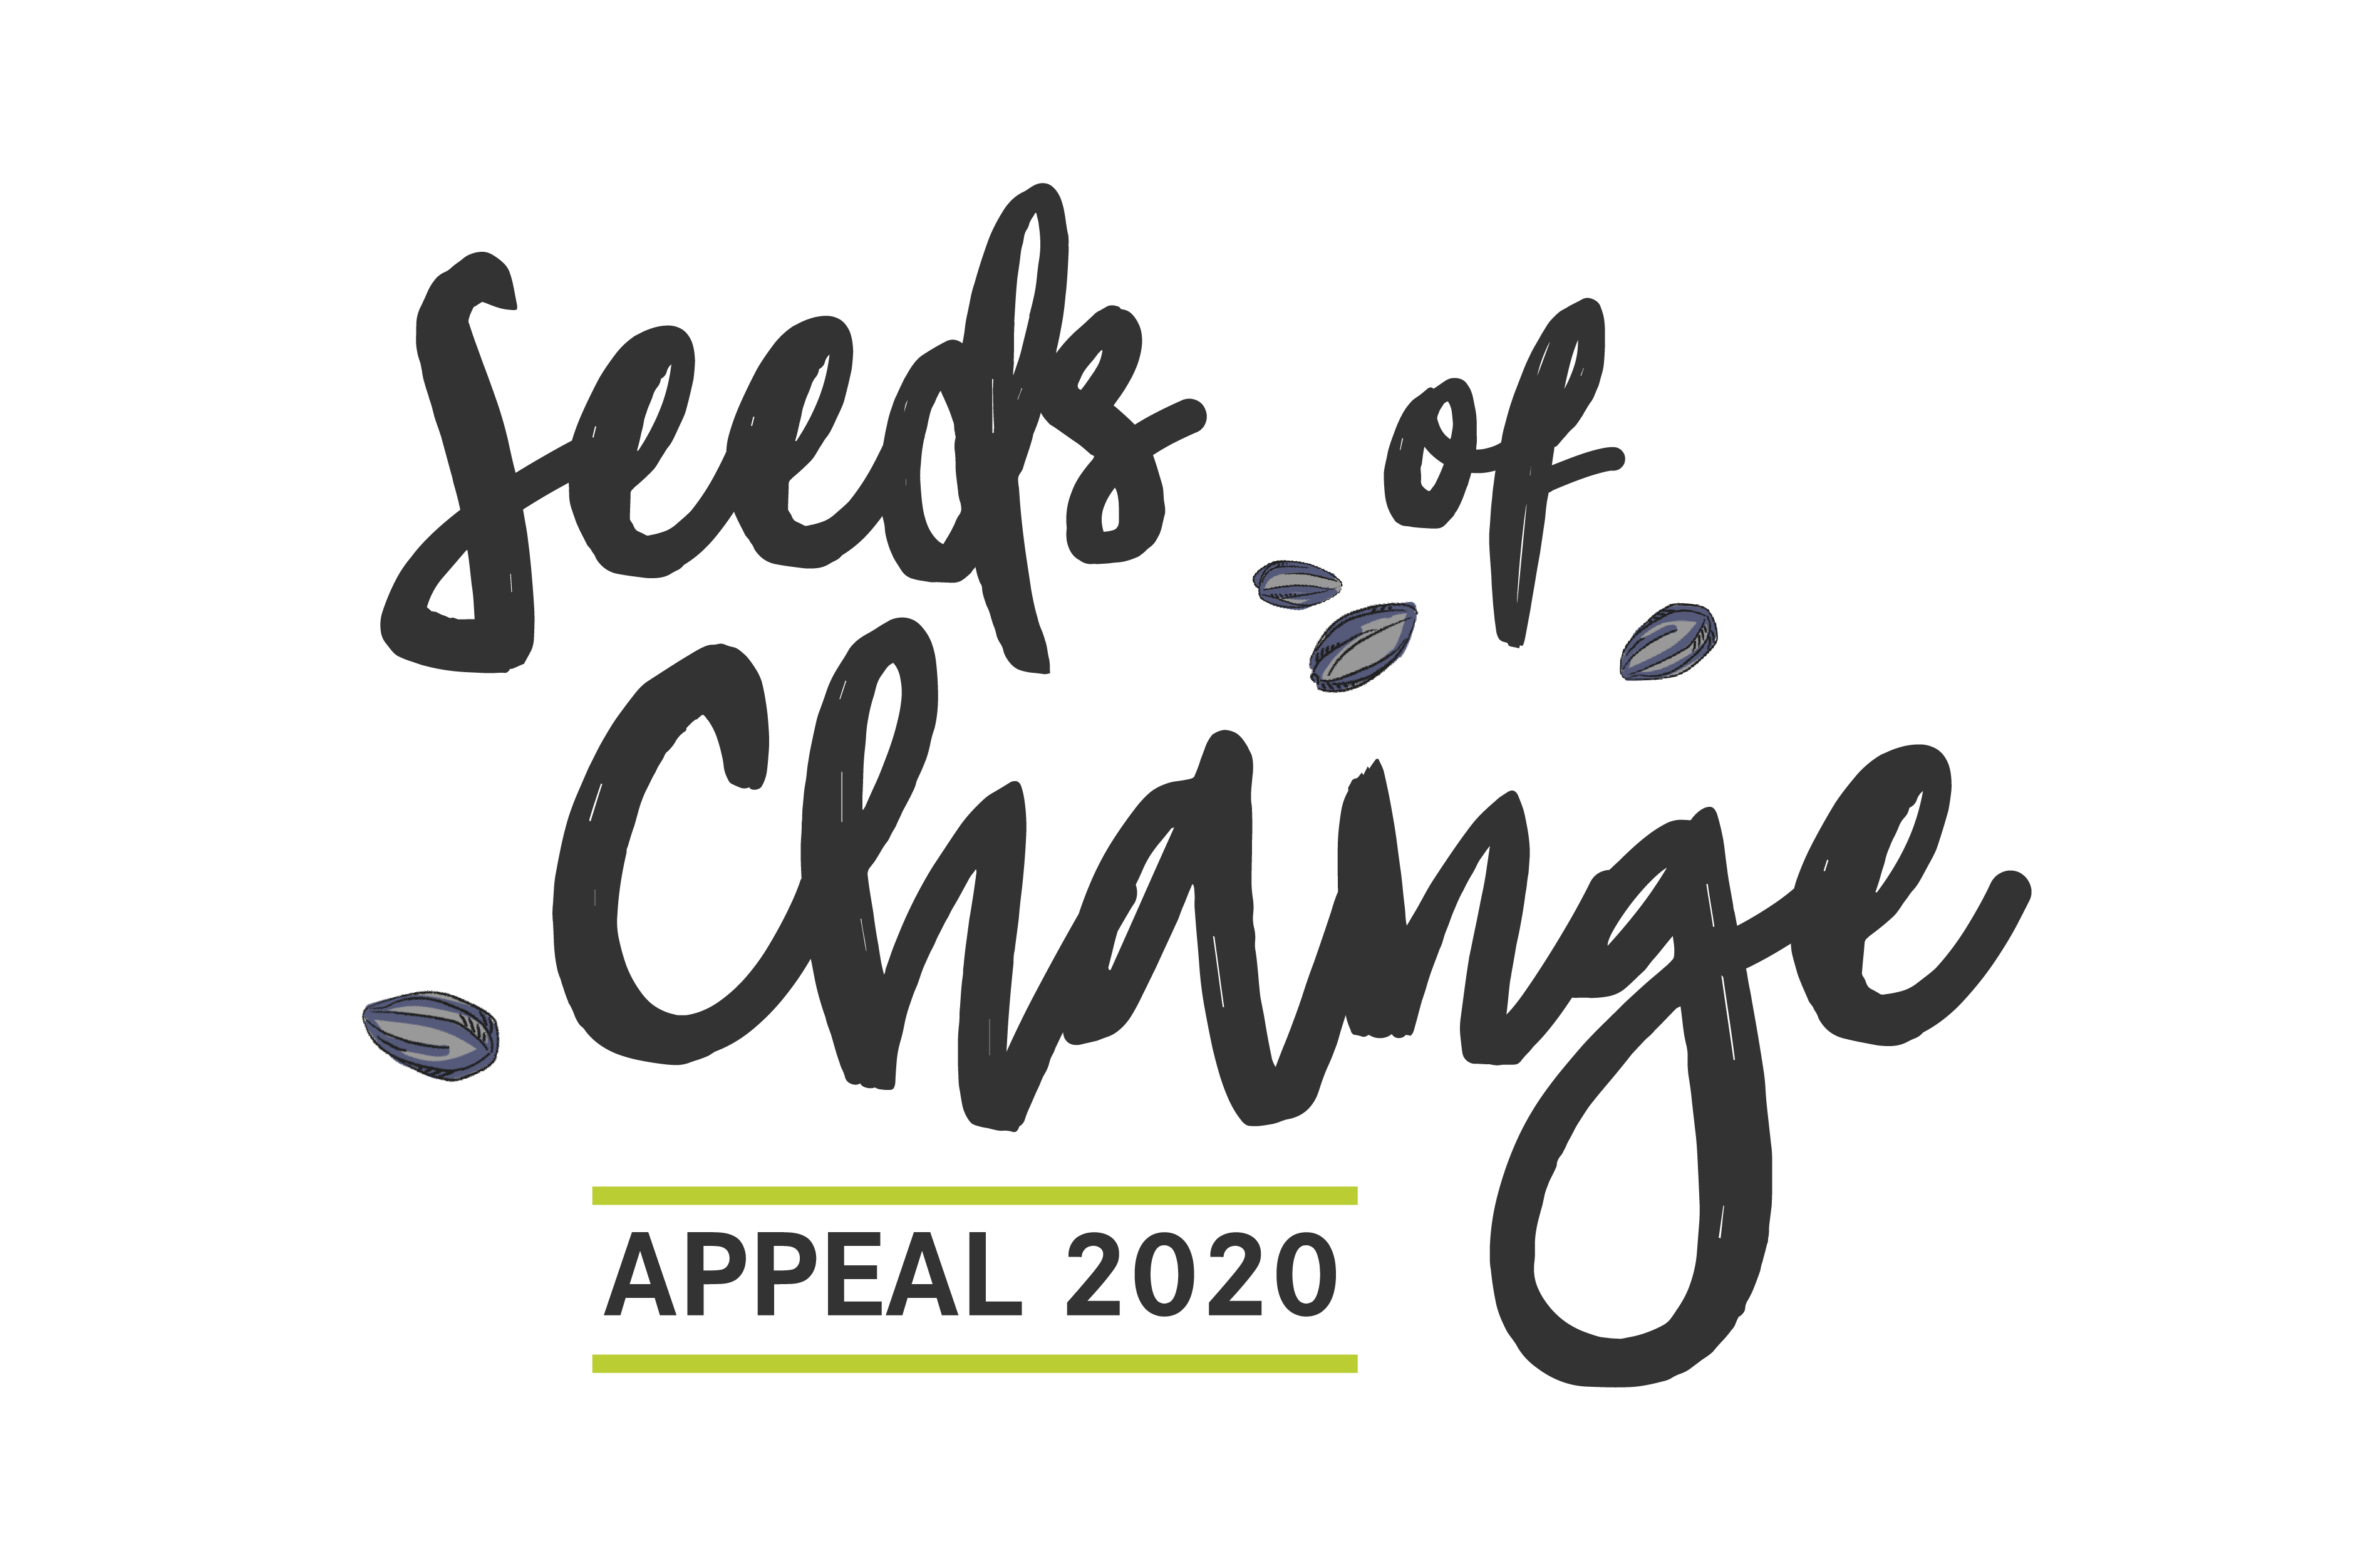 Seeds of Change Resource flat